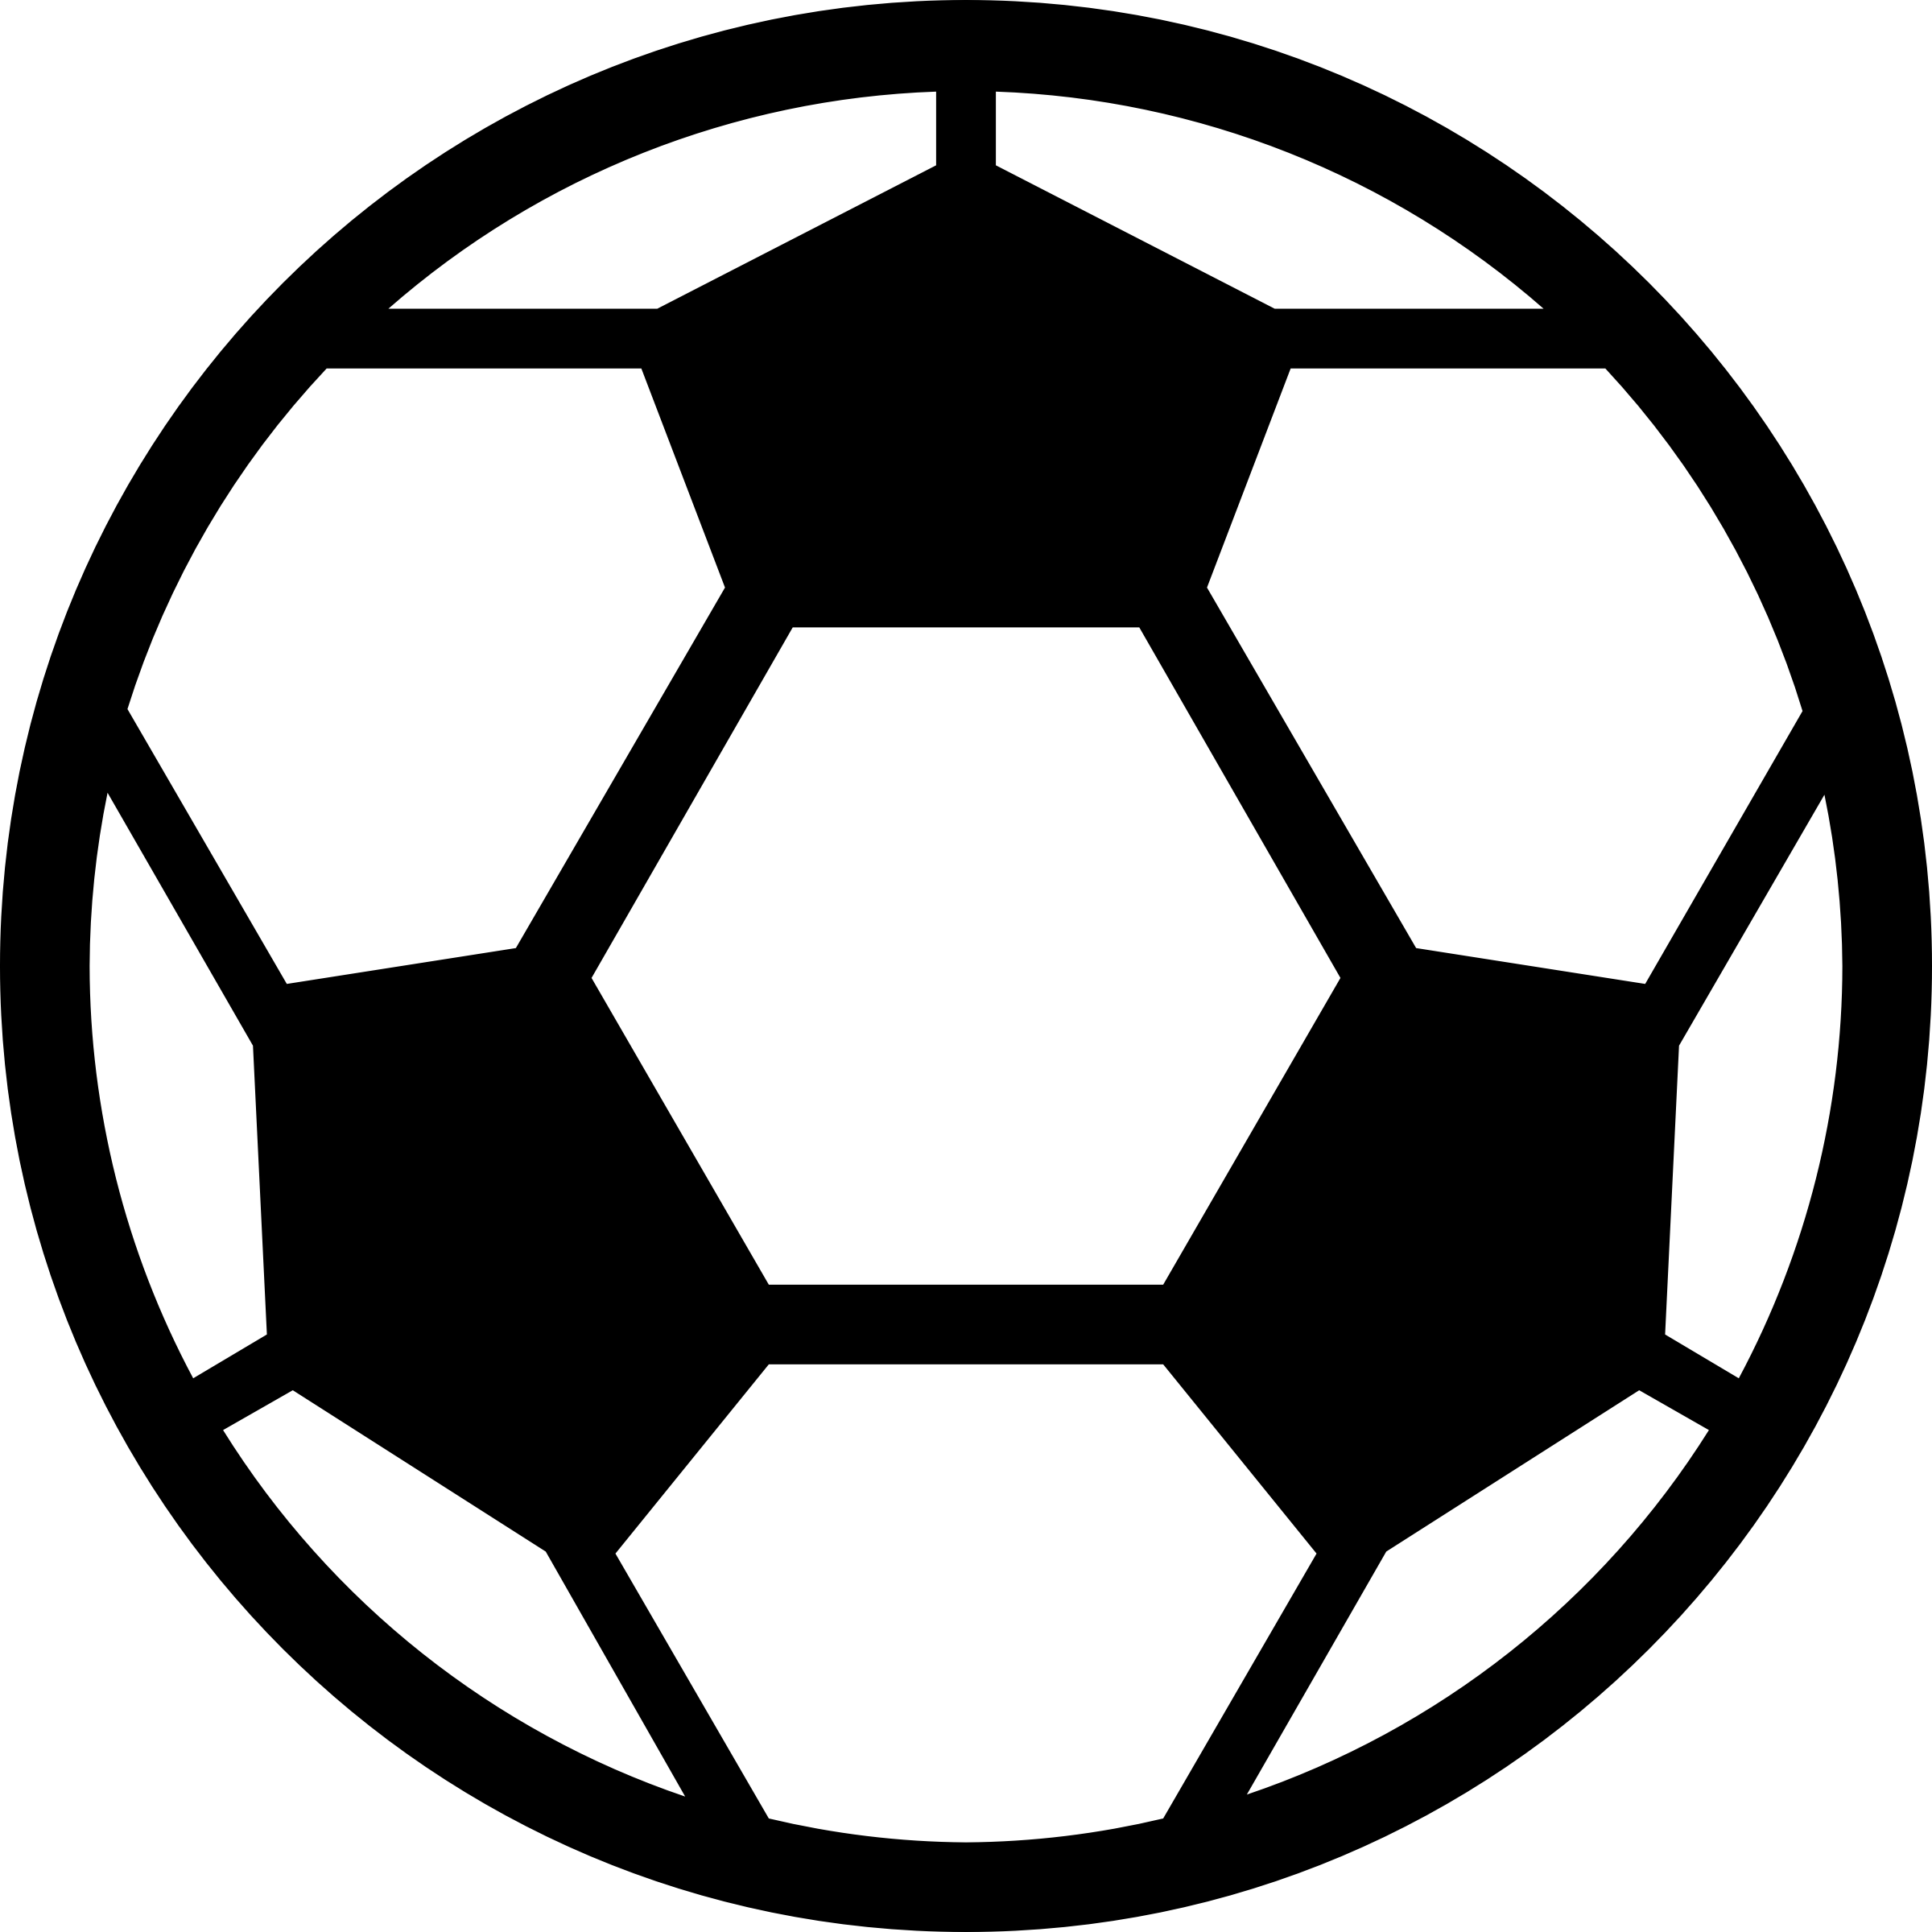 2400x2400 Soccer clipart transparent background